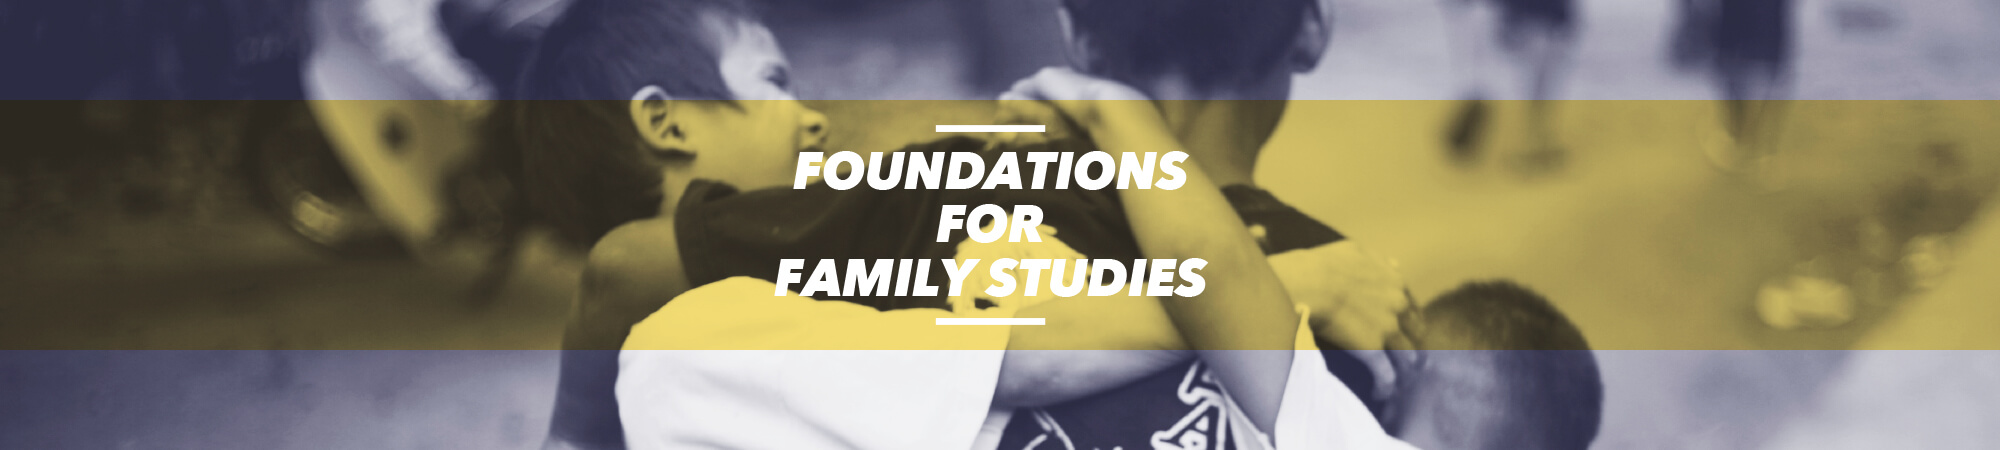 YWAM Worcester Foundations for Family Studies